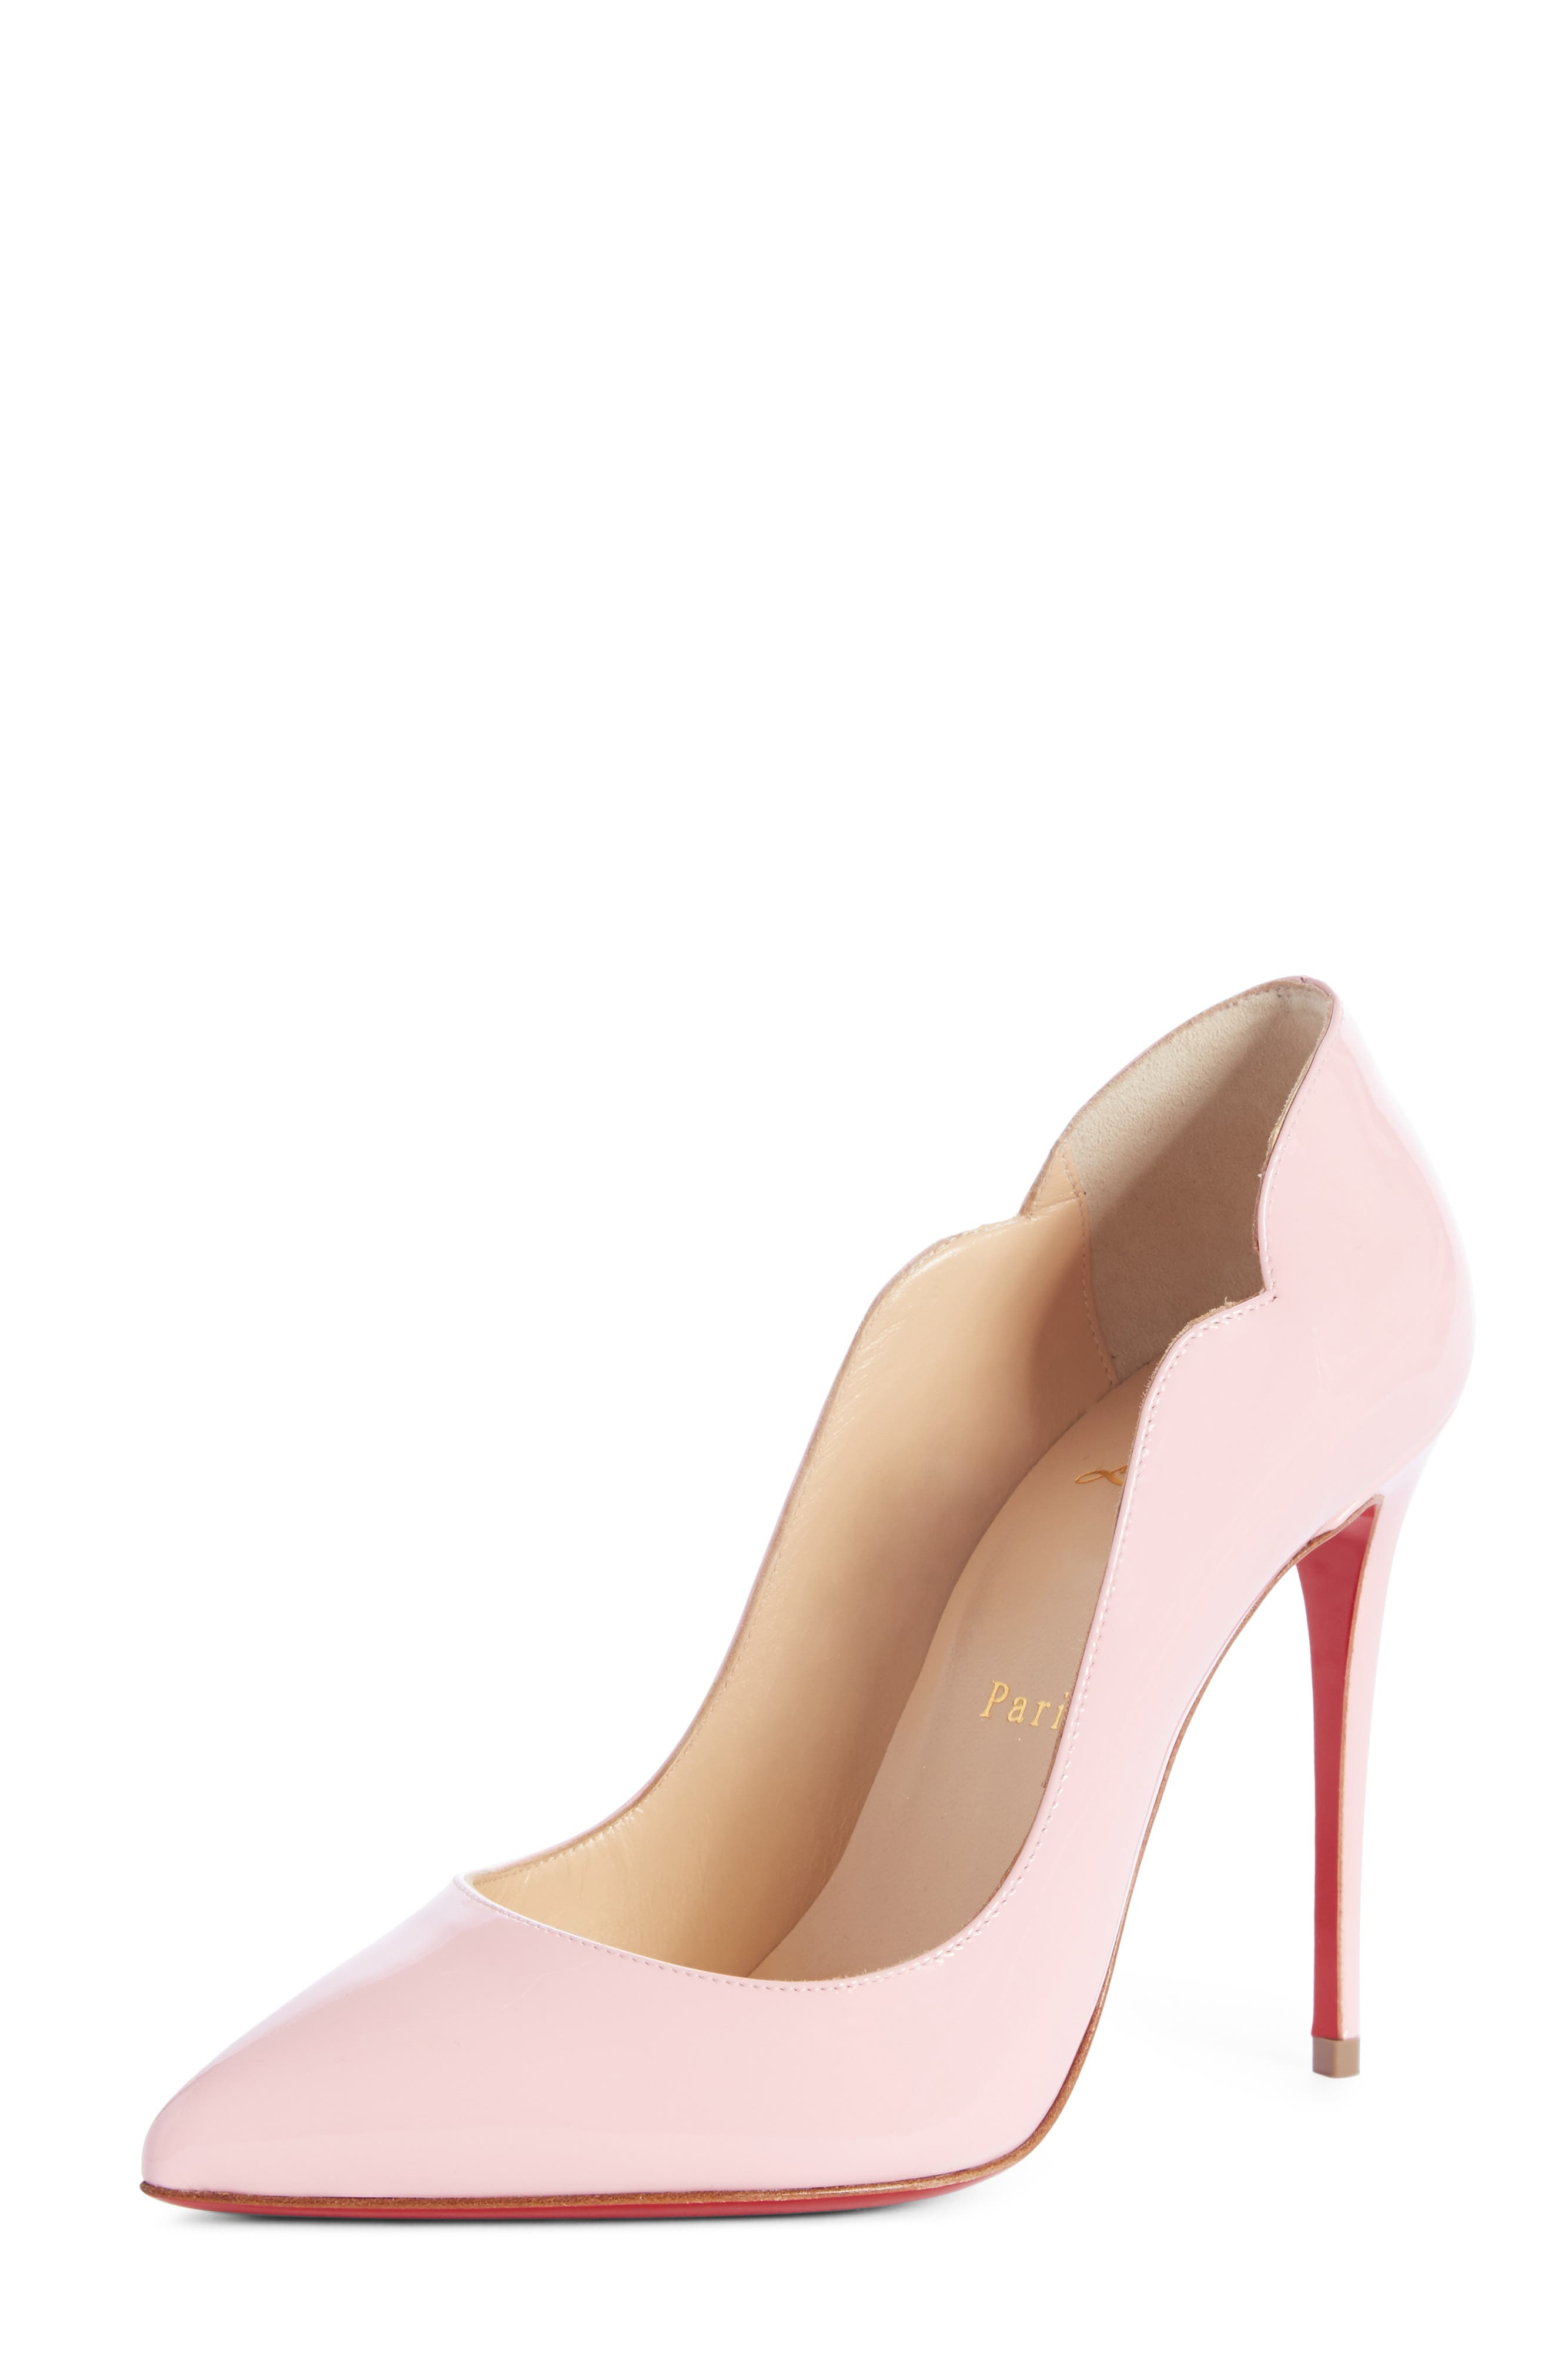 Hot Chick 100 Patent Red Sole Pumps in Eglantine Patent